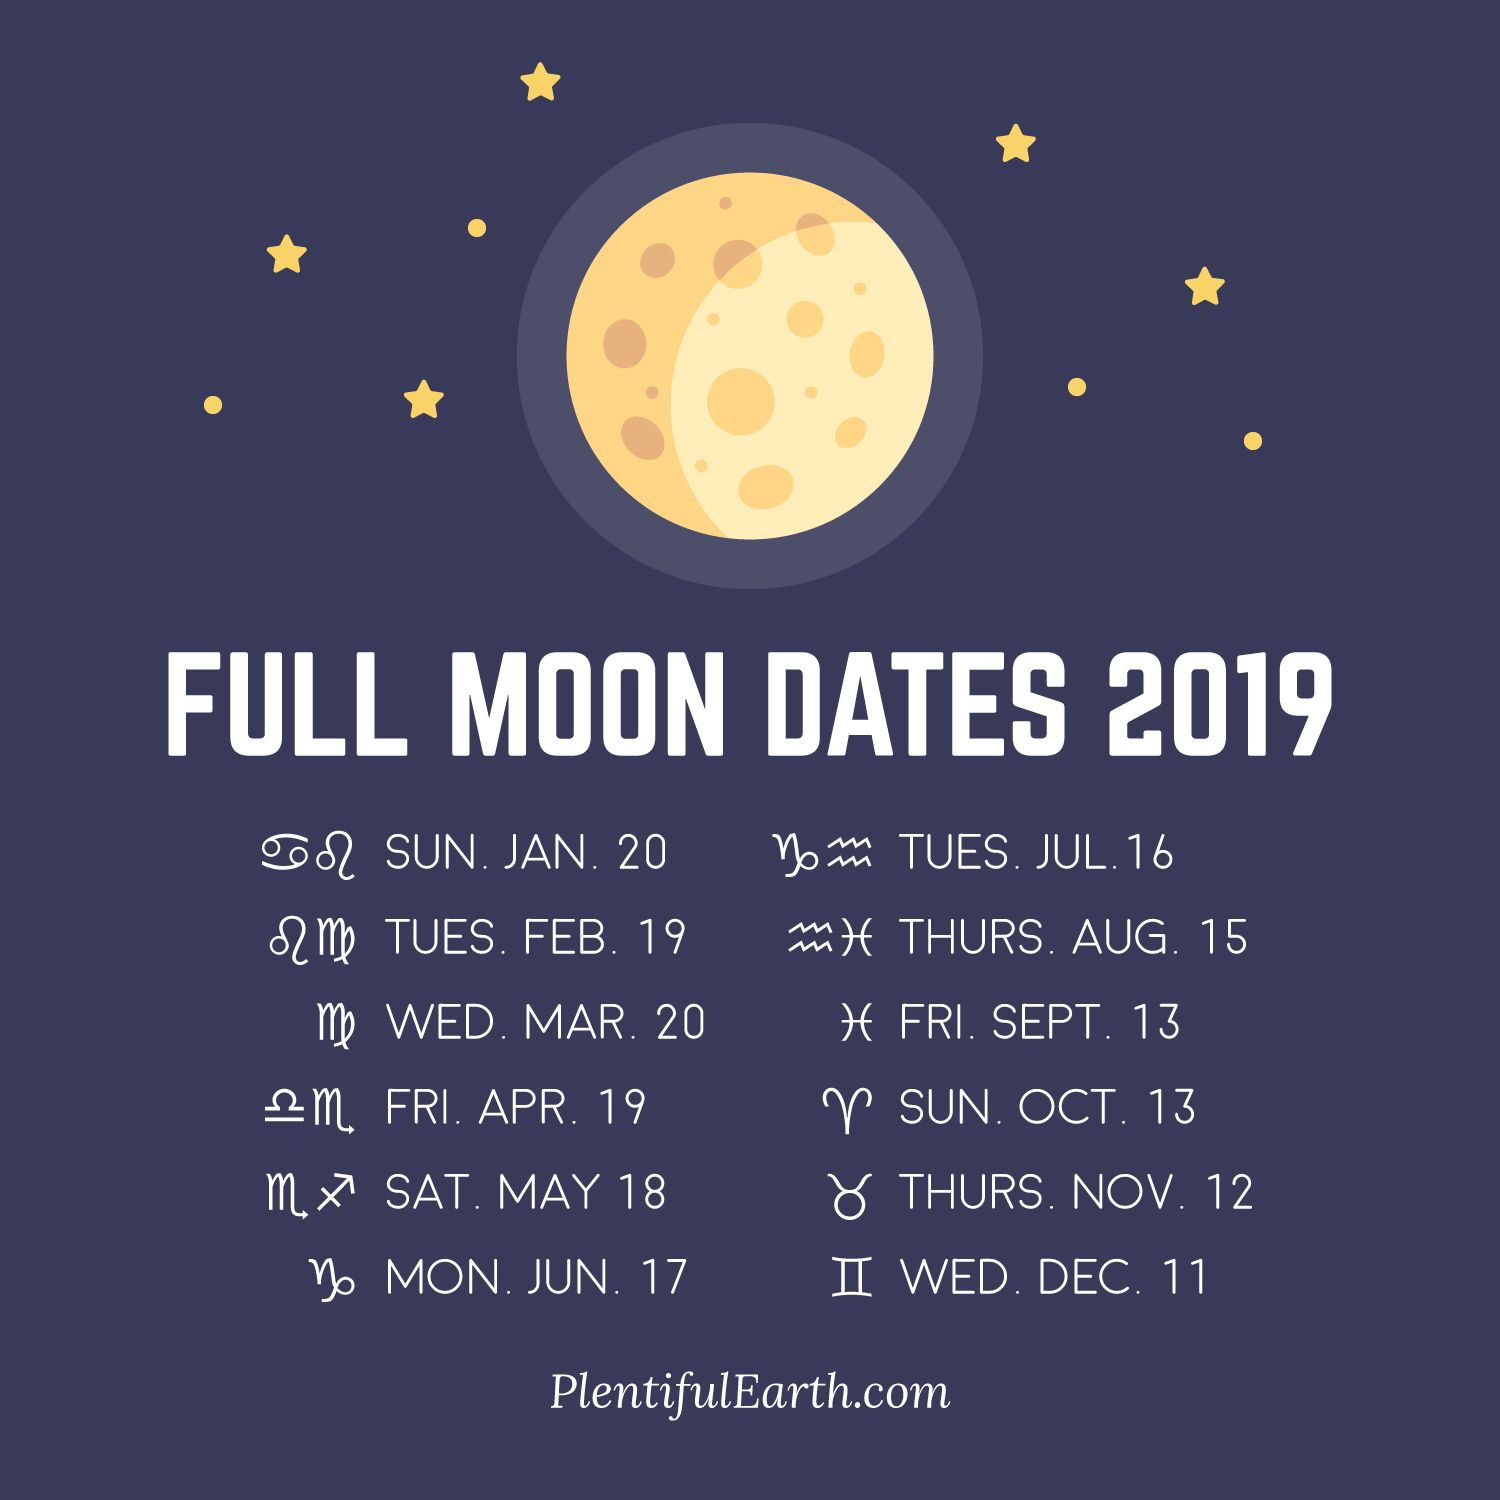 Full Moon Dates 2020 | Full Moon 2018, Moon Date, Full Moon